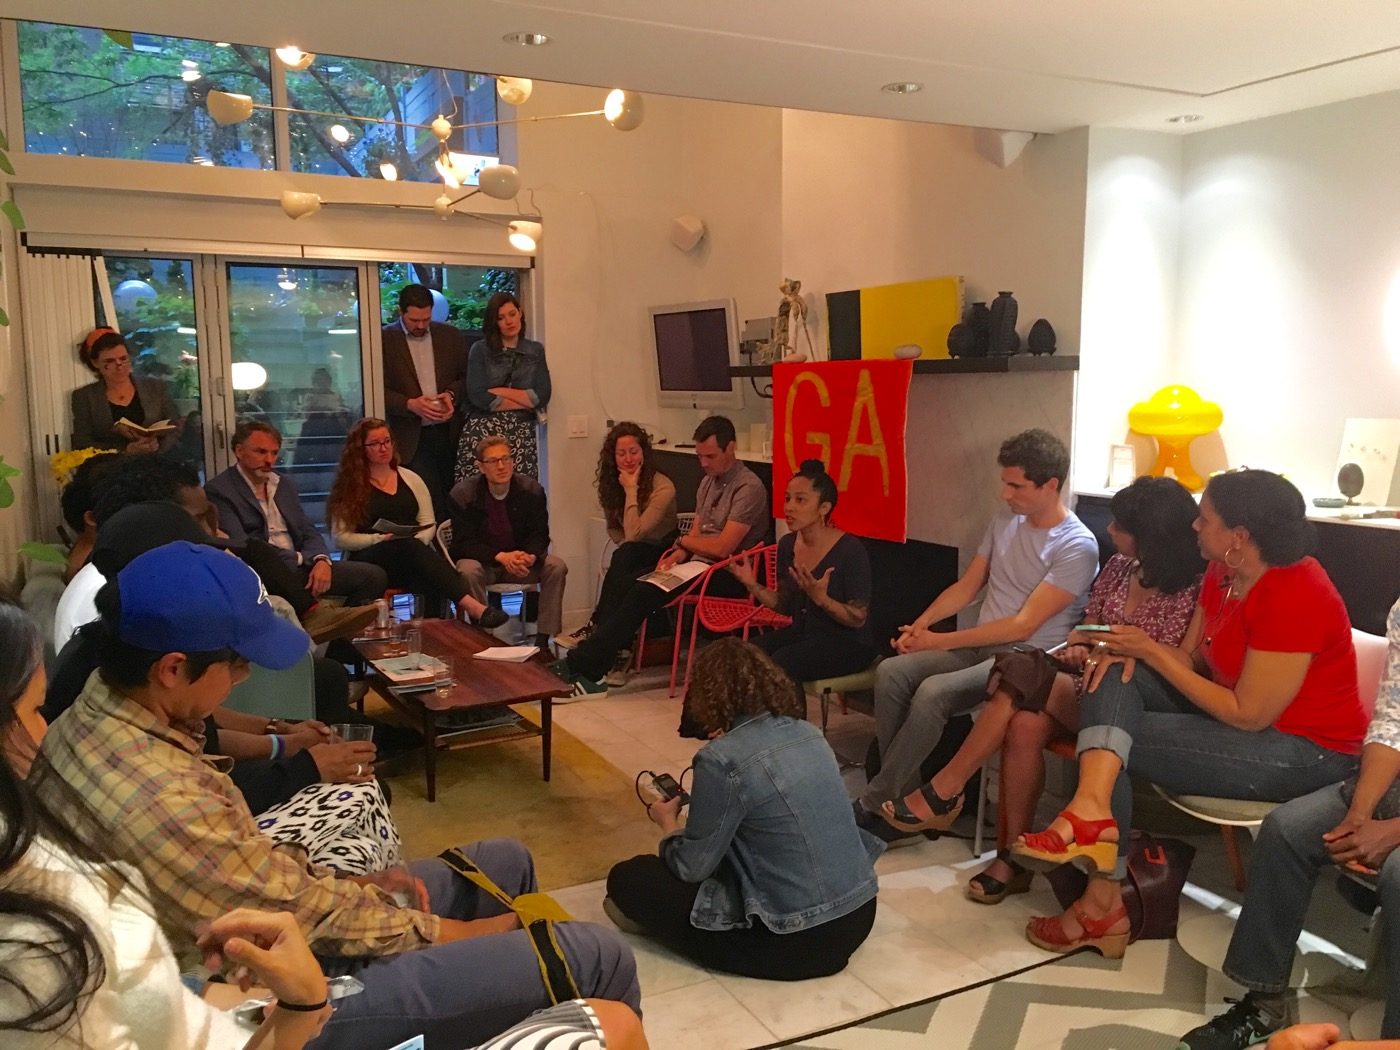 Gentrifiers Anonymous Meeting Saturday, May 14, in Chelsea. One of the organizers, Oasa DuVernay is in the center, beneath the GA flag. Photos courtesy of Jeff Kasper of More Art